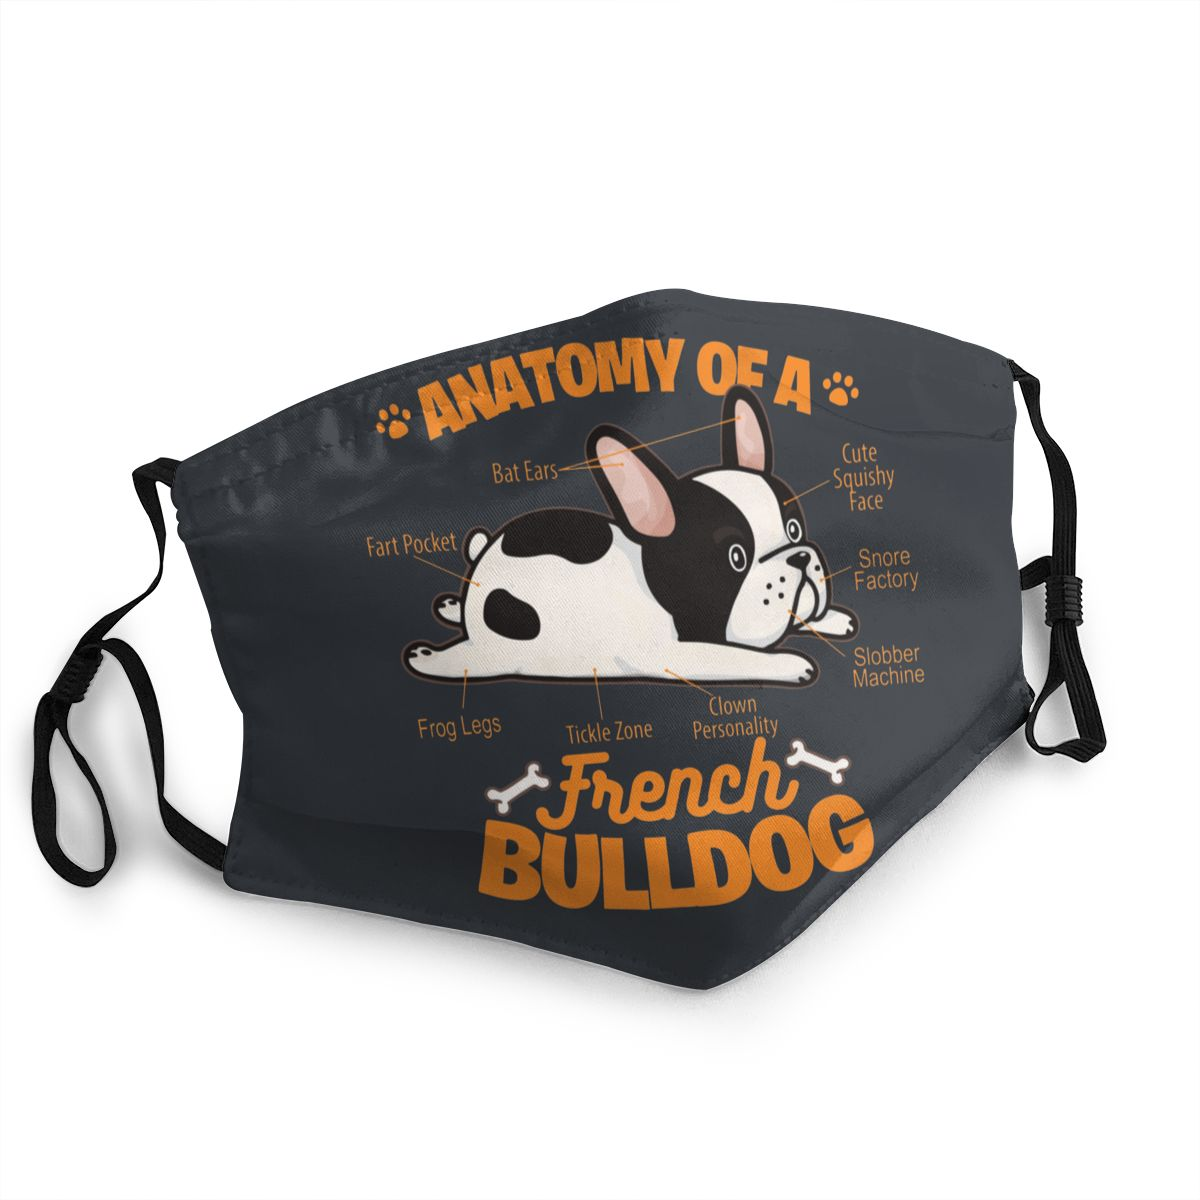 French Bulldog Unisex Non-Disposable Face Mask Anti Haze Dustproof Mask Protection Cover Respirator Mouth Muffle